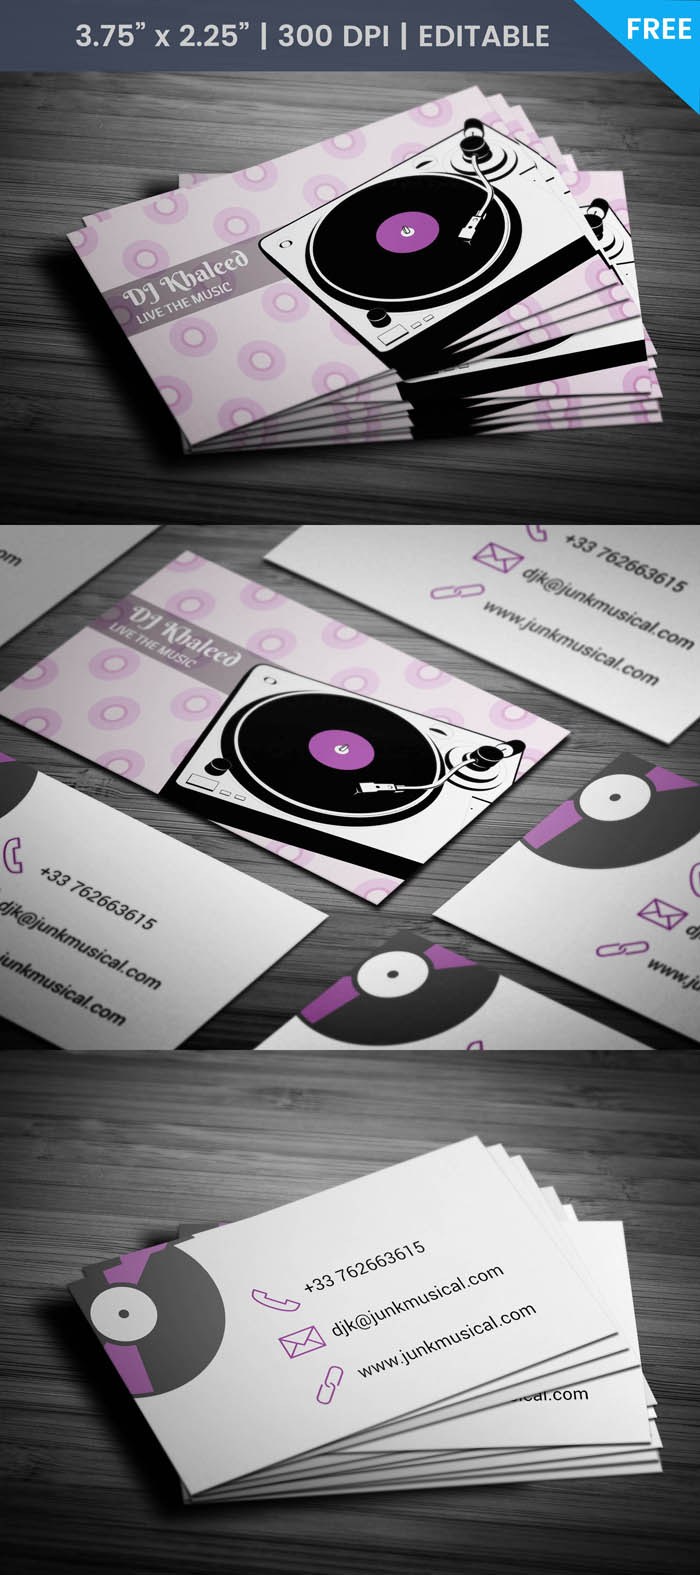 Free Turntable Business Card Template